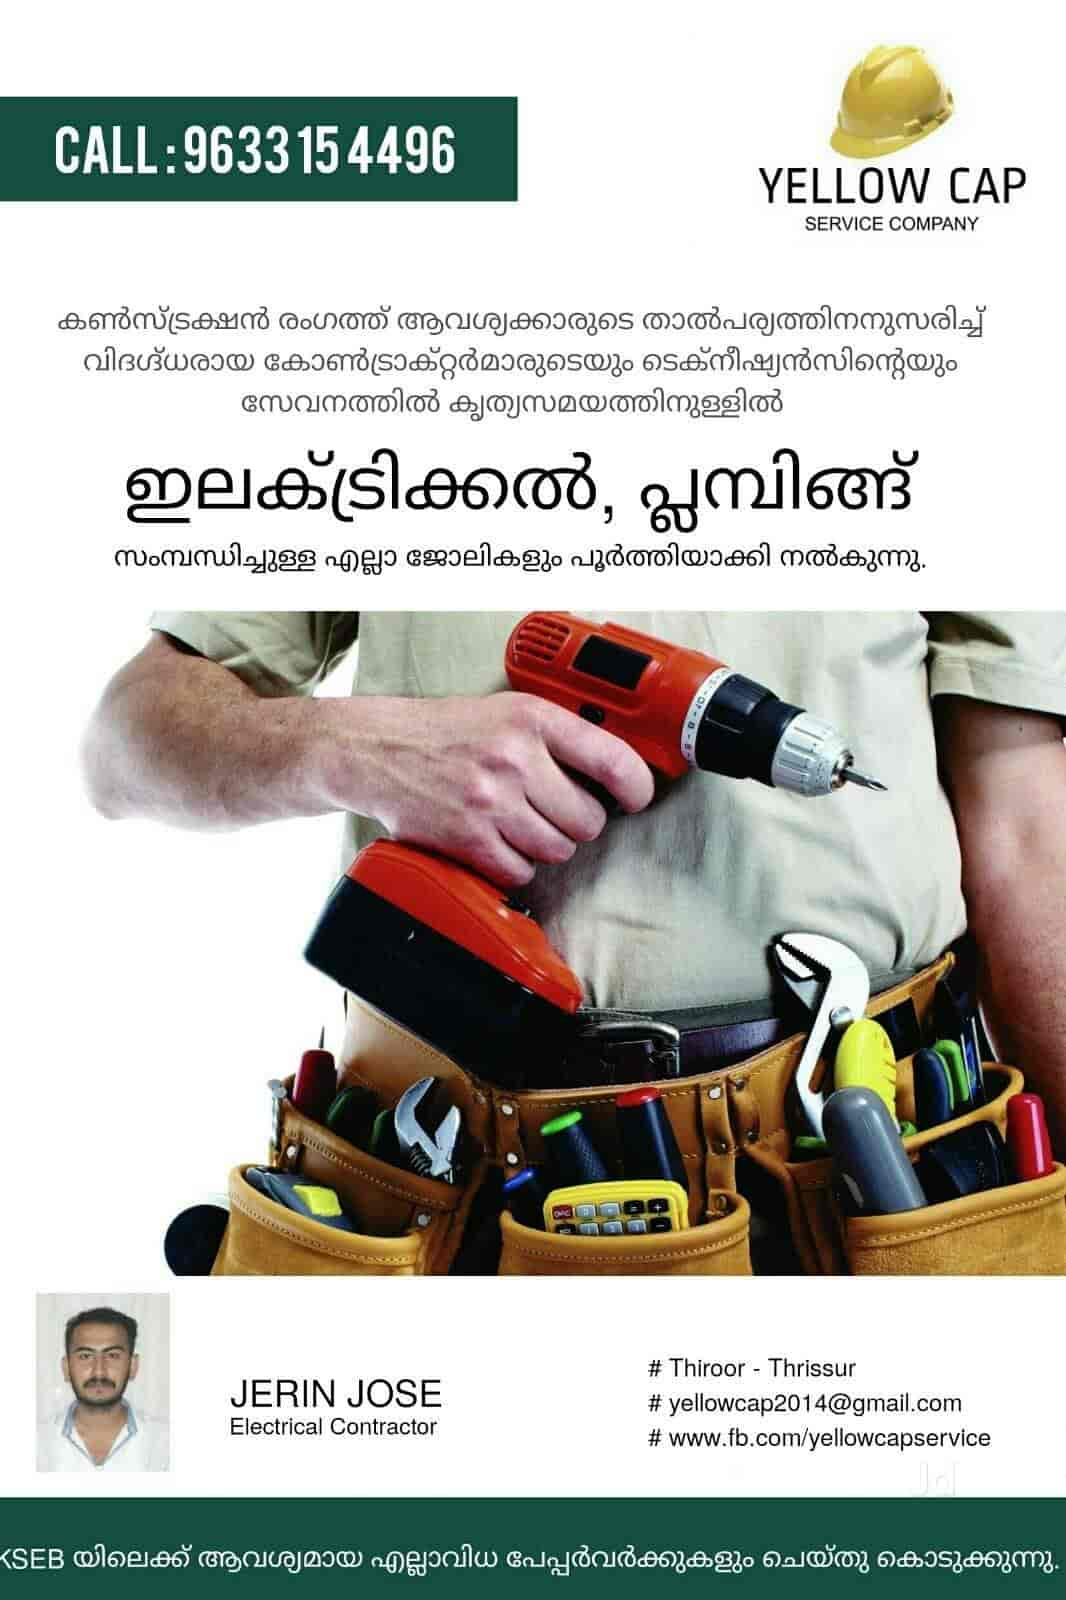 Aenon Graphics, Thrissur Ho - Printing Press in Thrissur